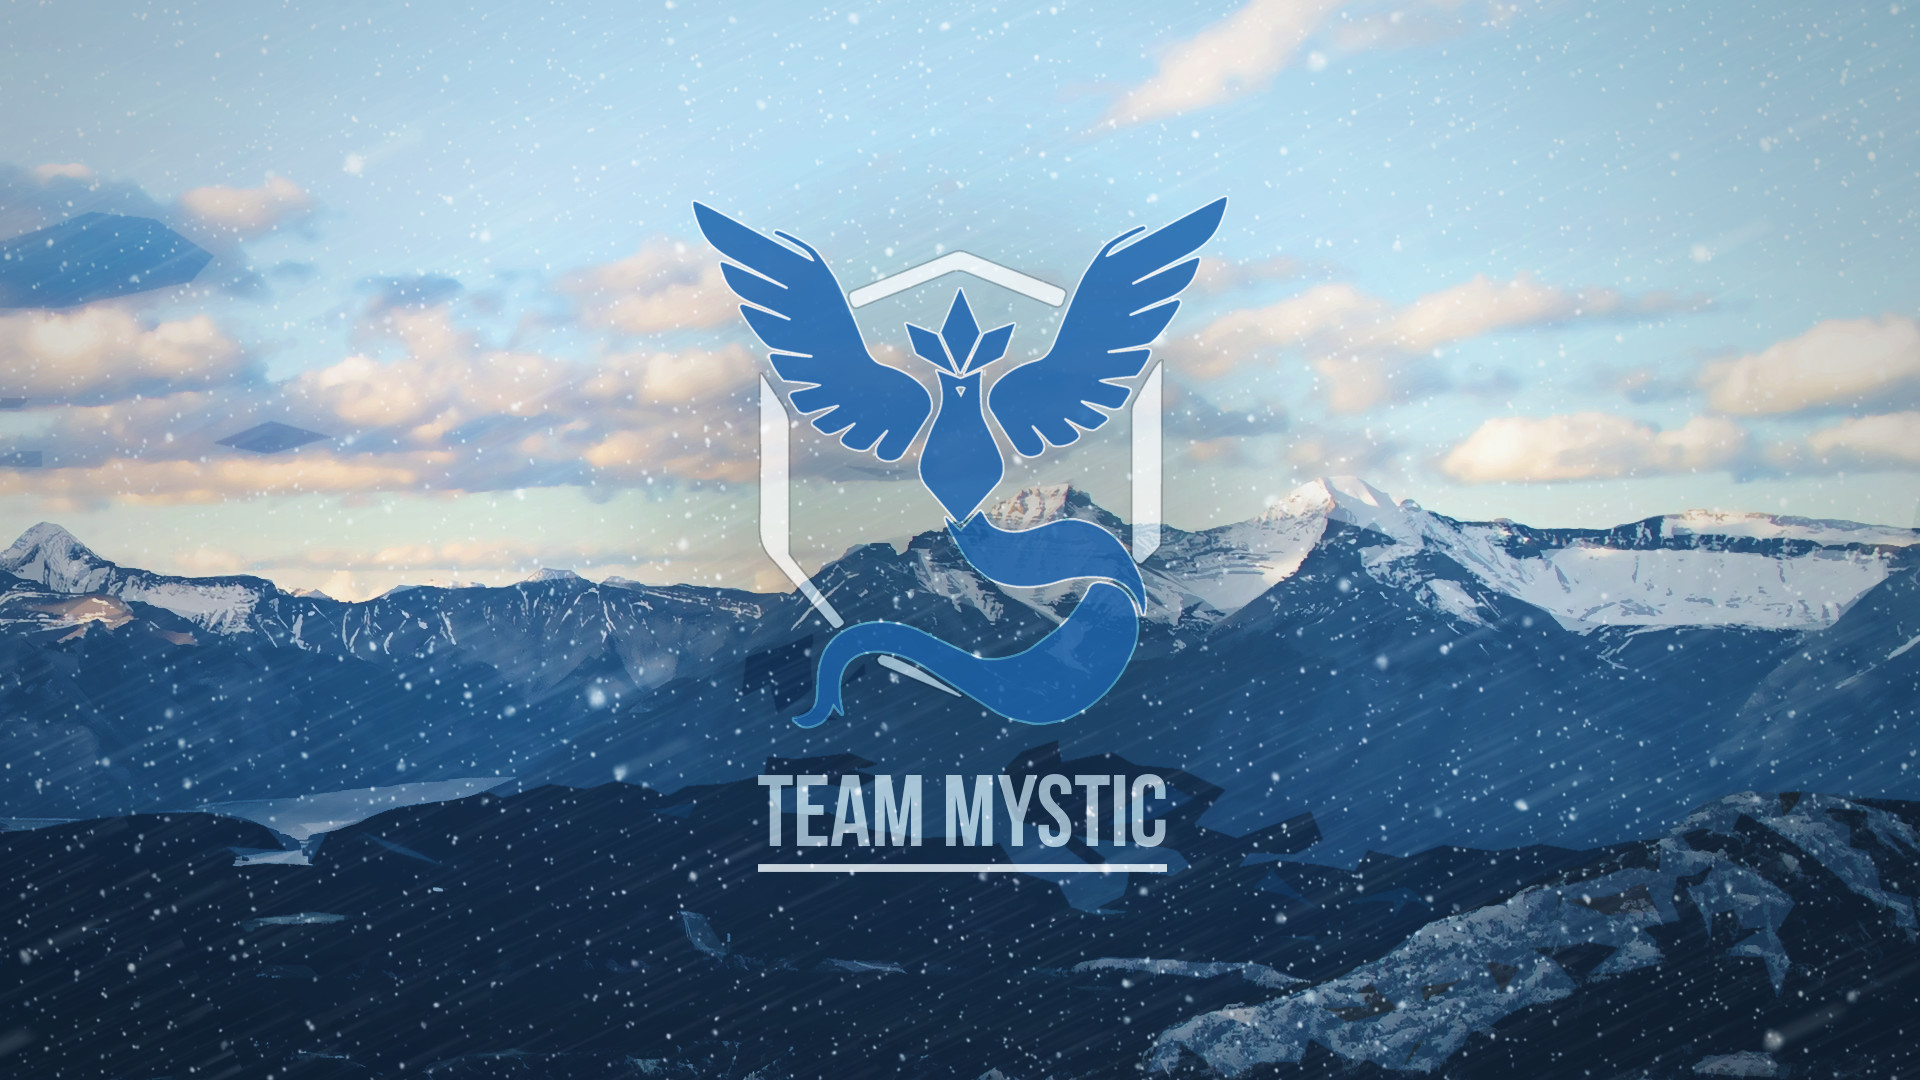 Team Mystic Wallpapers Wallpapertag